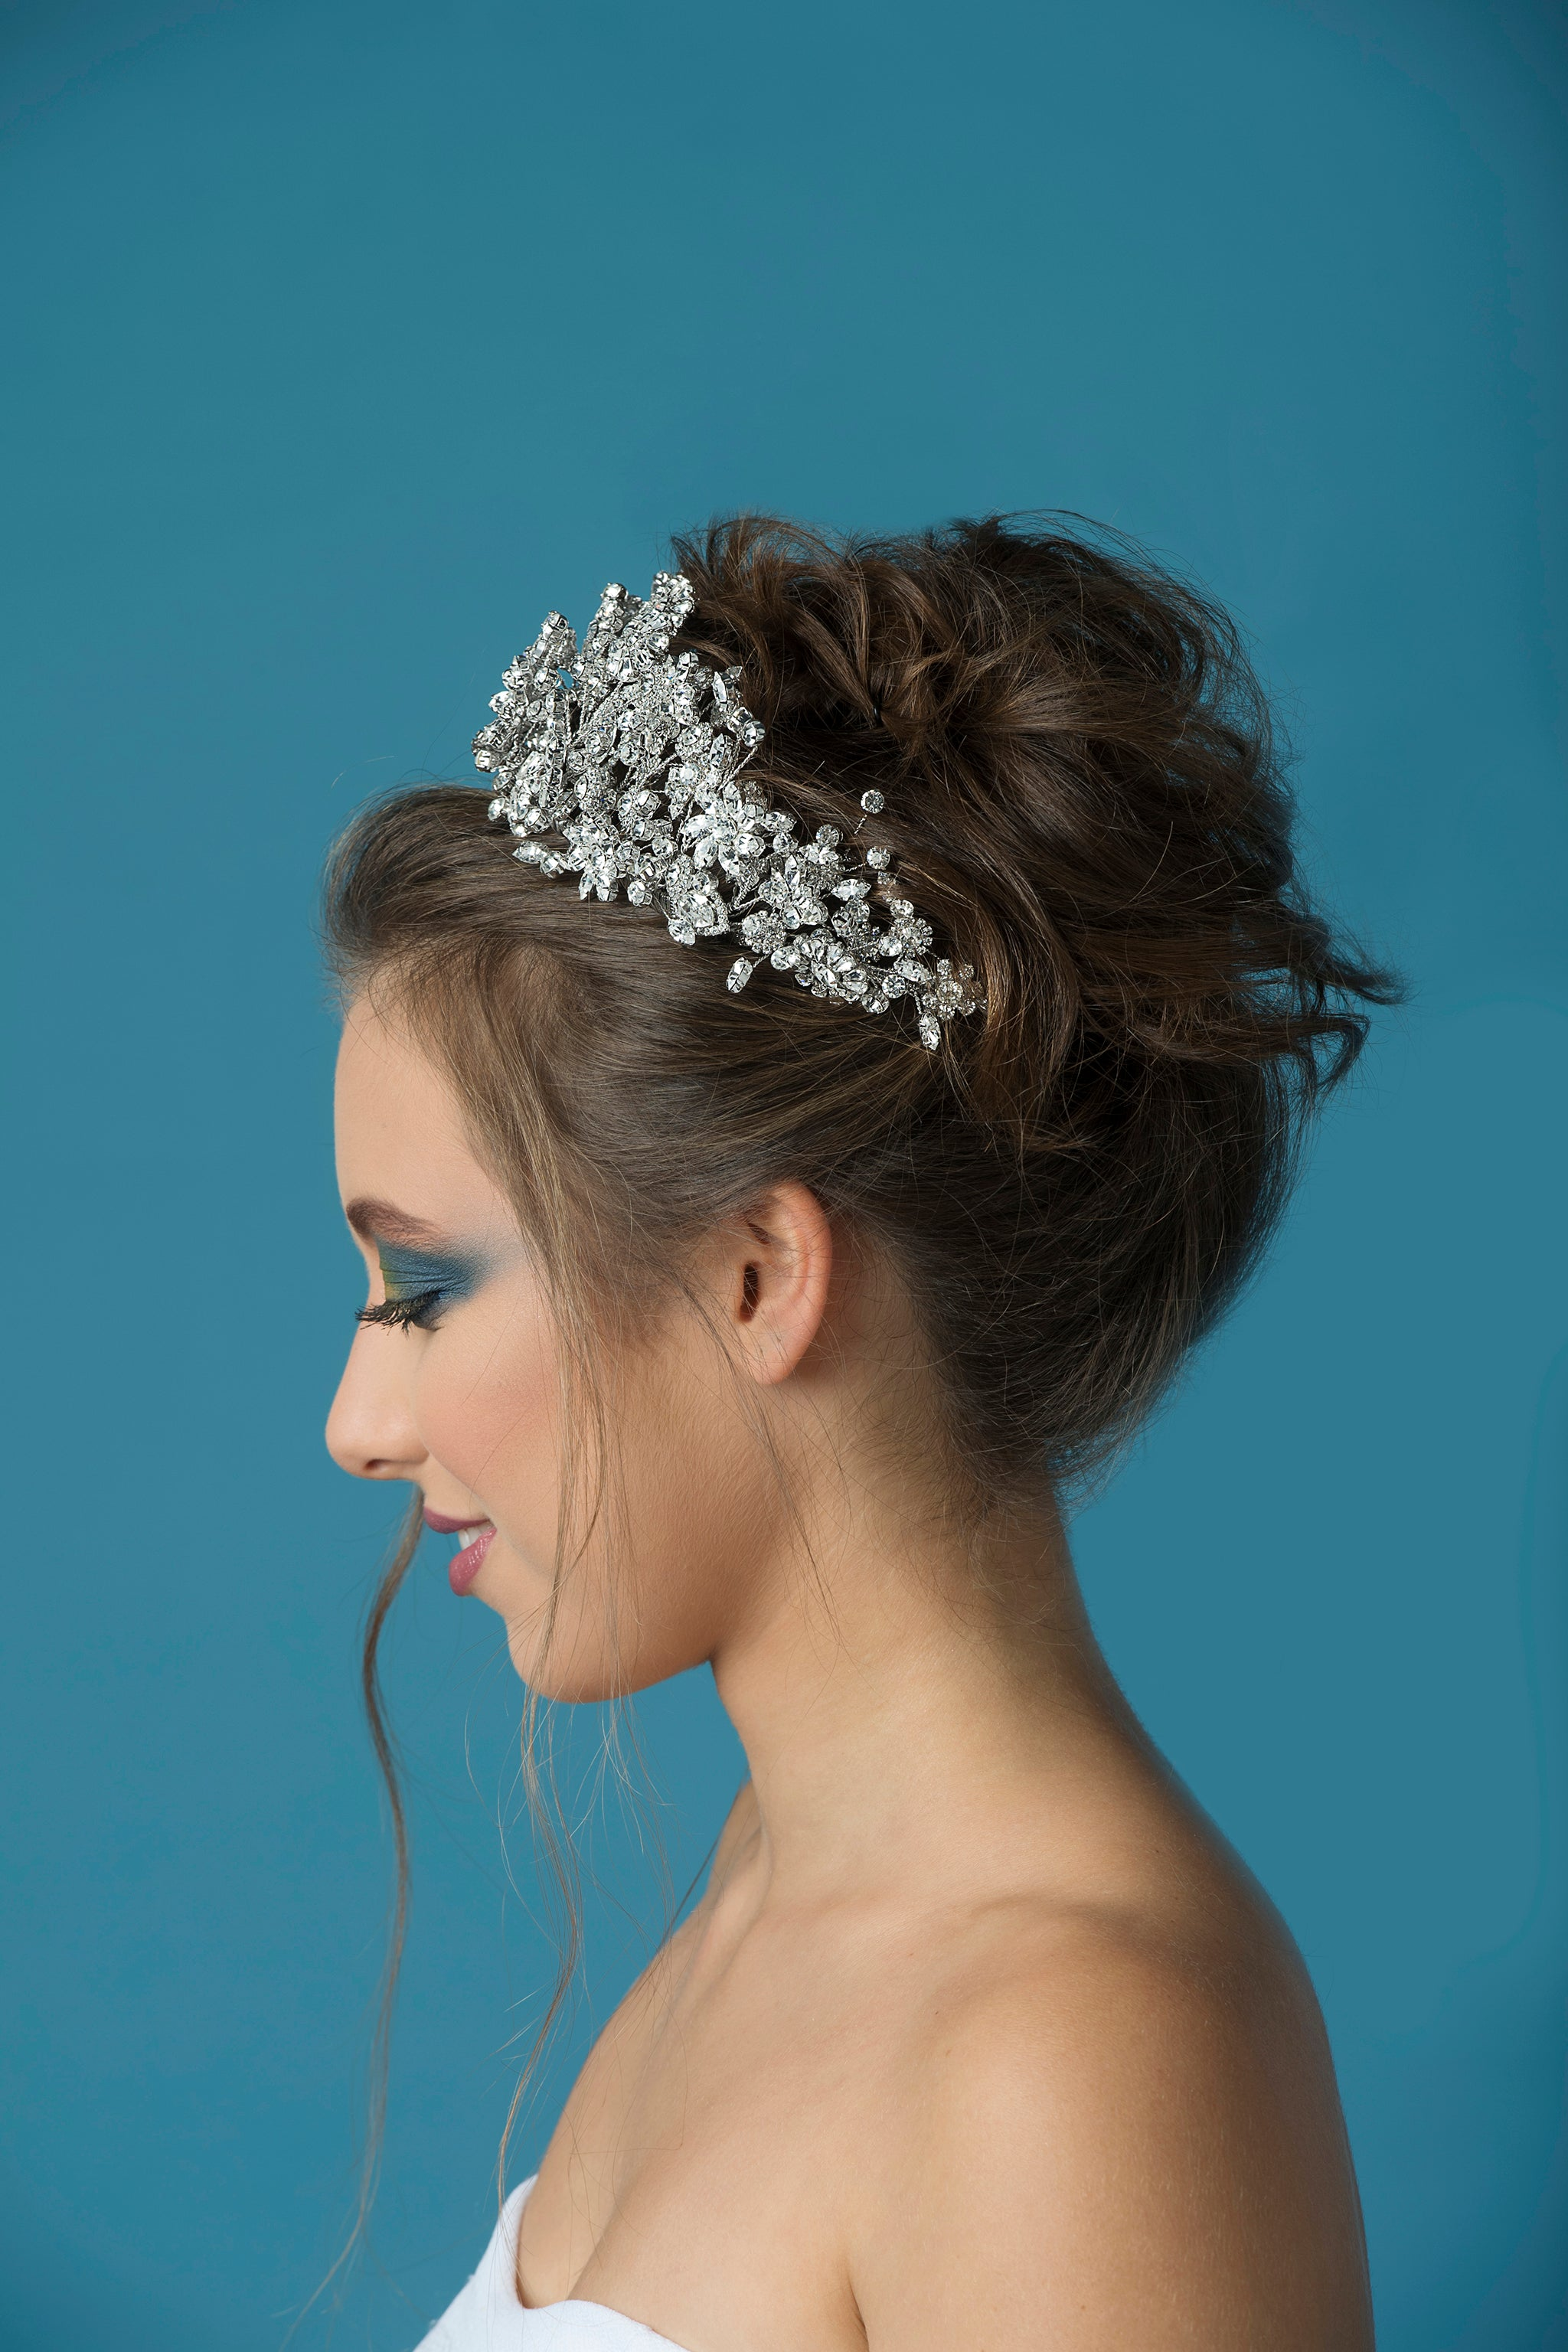 Hair Crystals - Bridal Look - Bride Hair - Hairstyle - Crown - Hairpiece